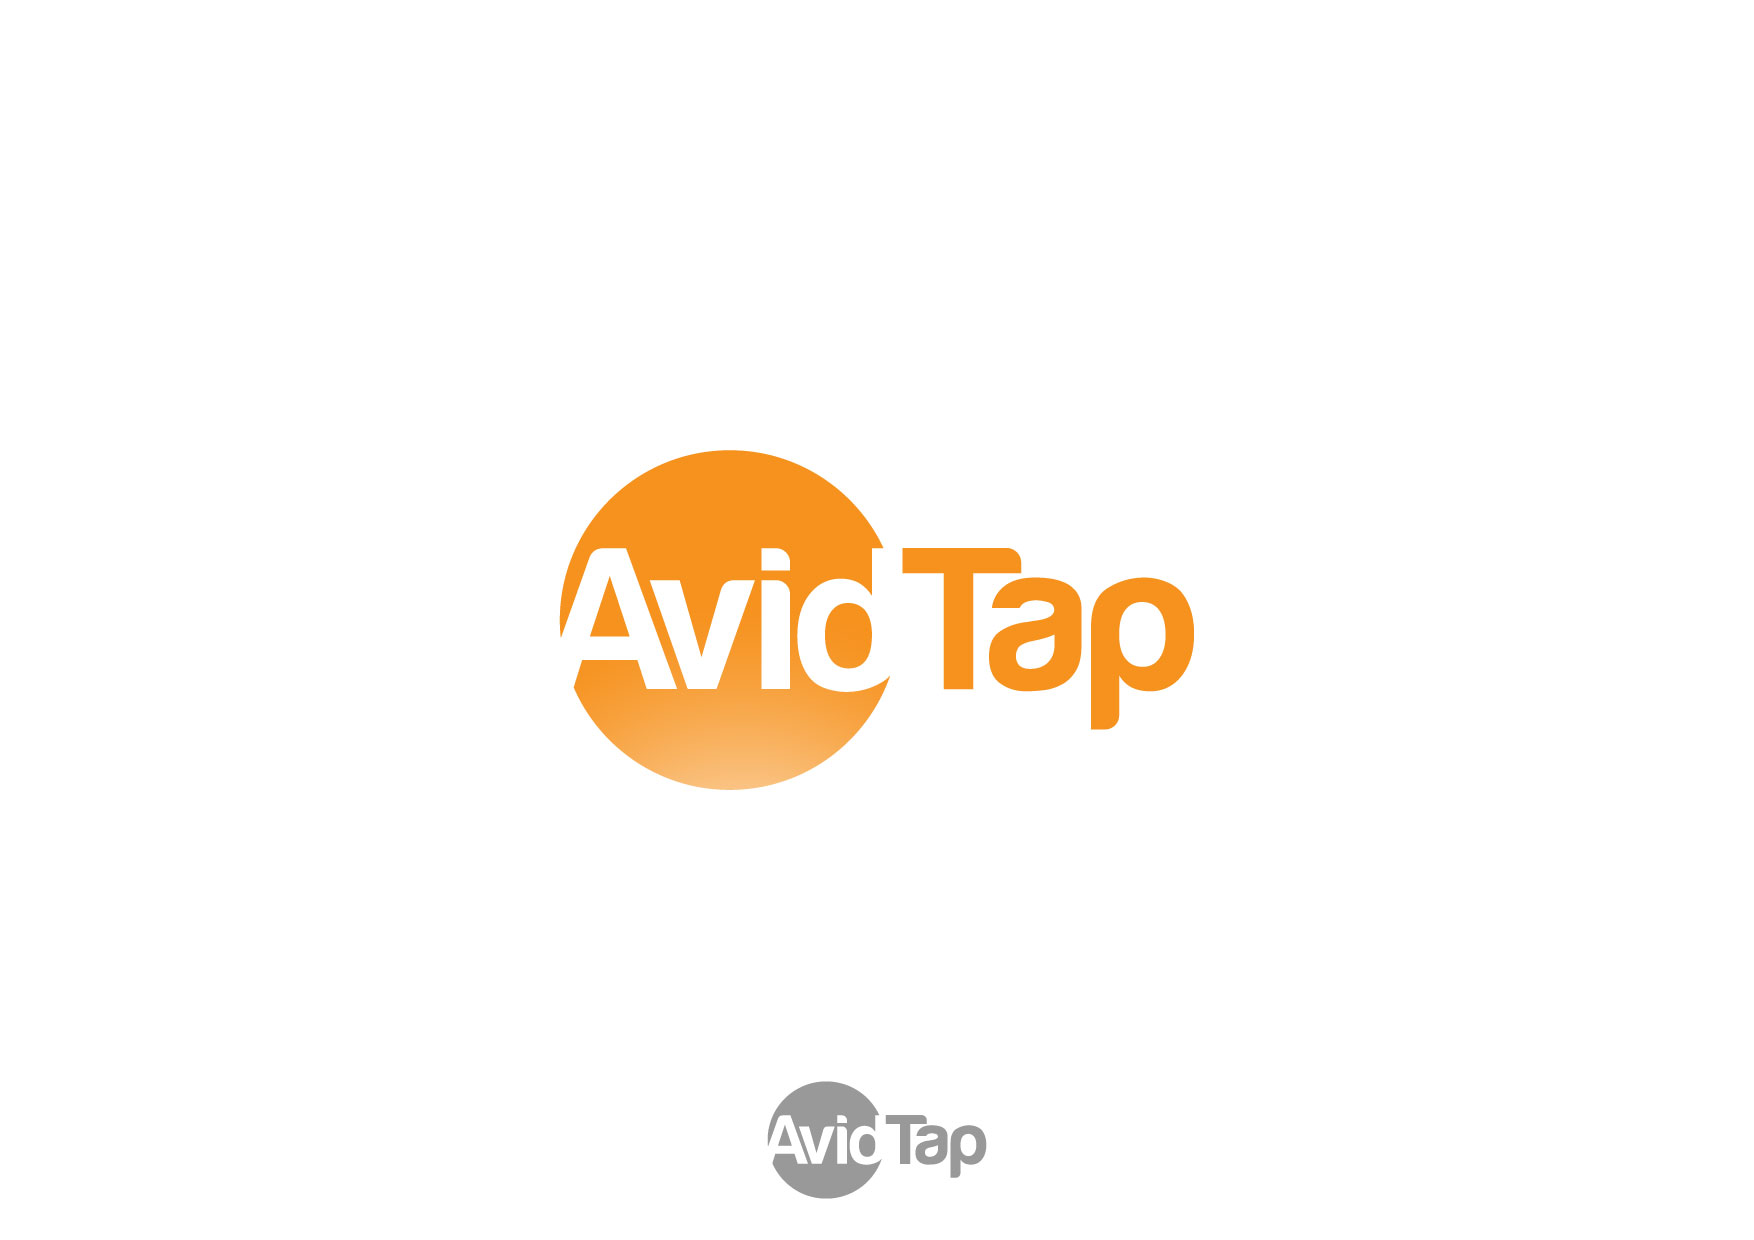 Logo Design by Nurgalih Destianto - Entry No. 44 in the Logo Design Contest Imaginative Logo Design for AvidTap.